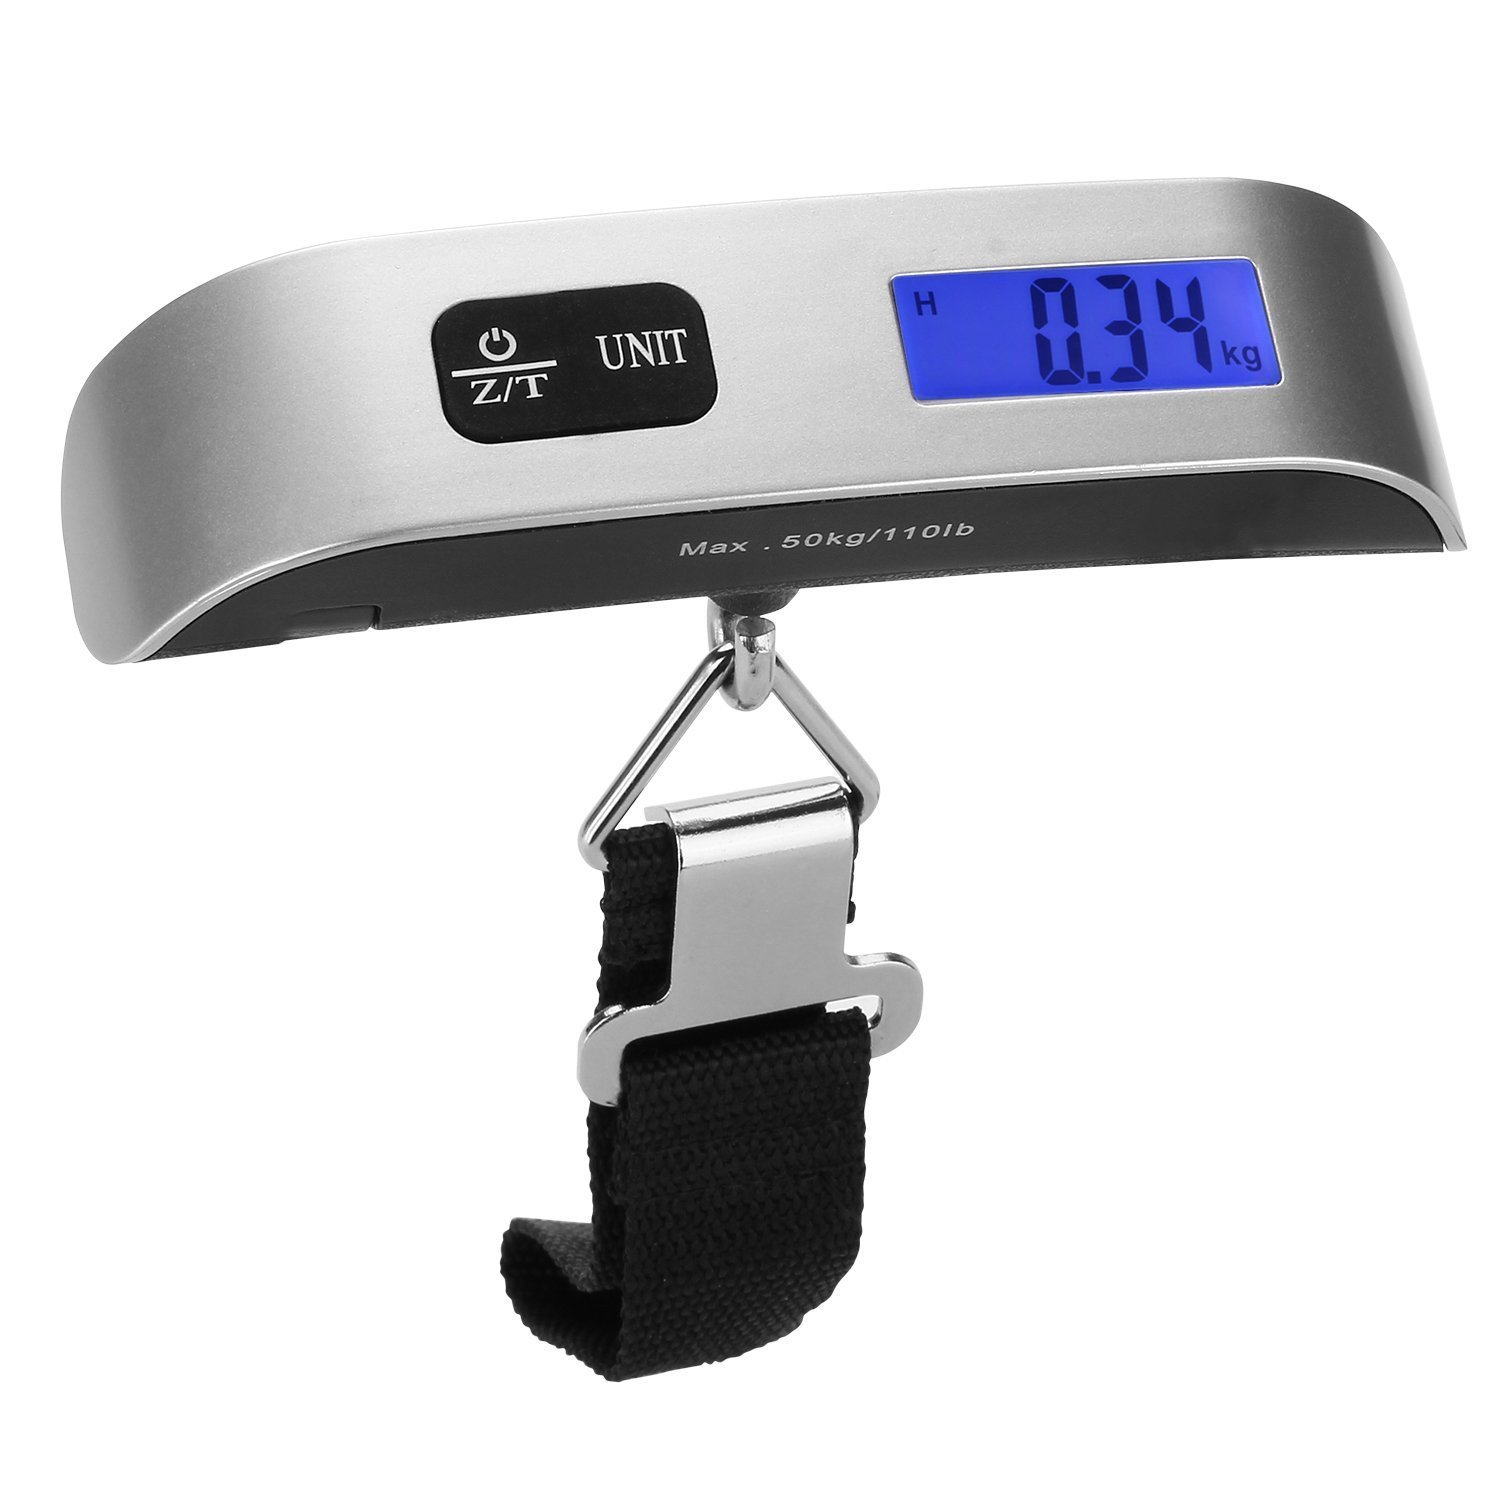 Backlight LCD Display Luggage Scale]Dr.meter 110lb/50kg Electronic ...